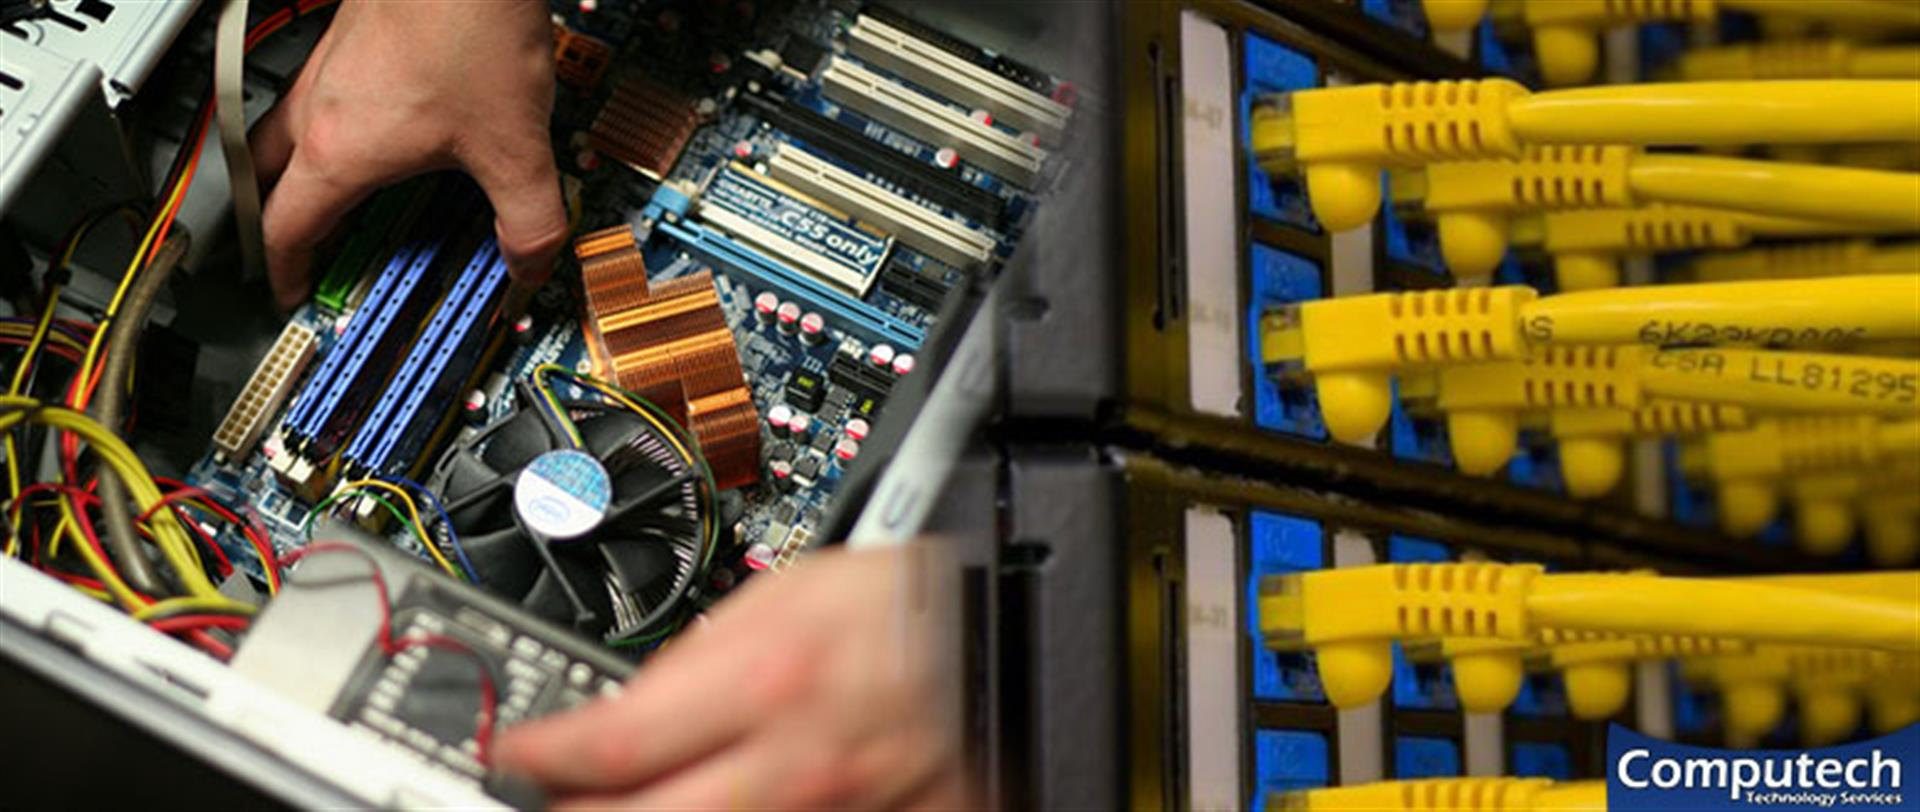 Wickenburg Arizona Onsite Computer PC & Printer Repairs, Networking, Voice and Data Low Voltage Cabling Services